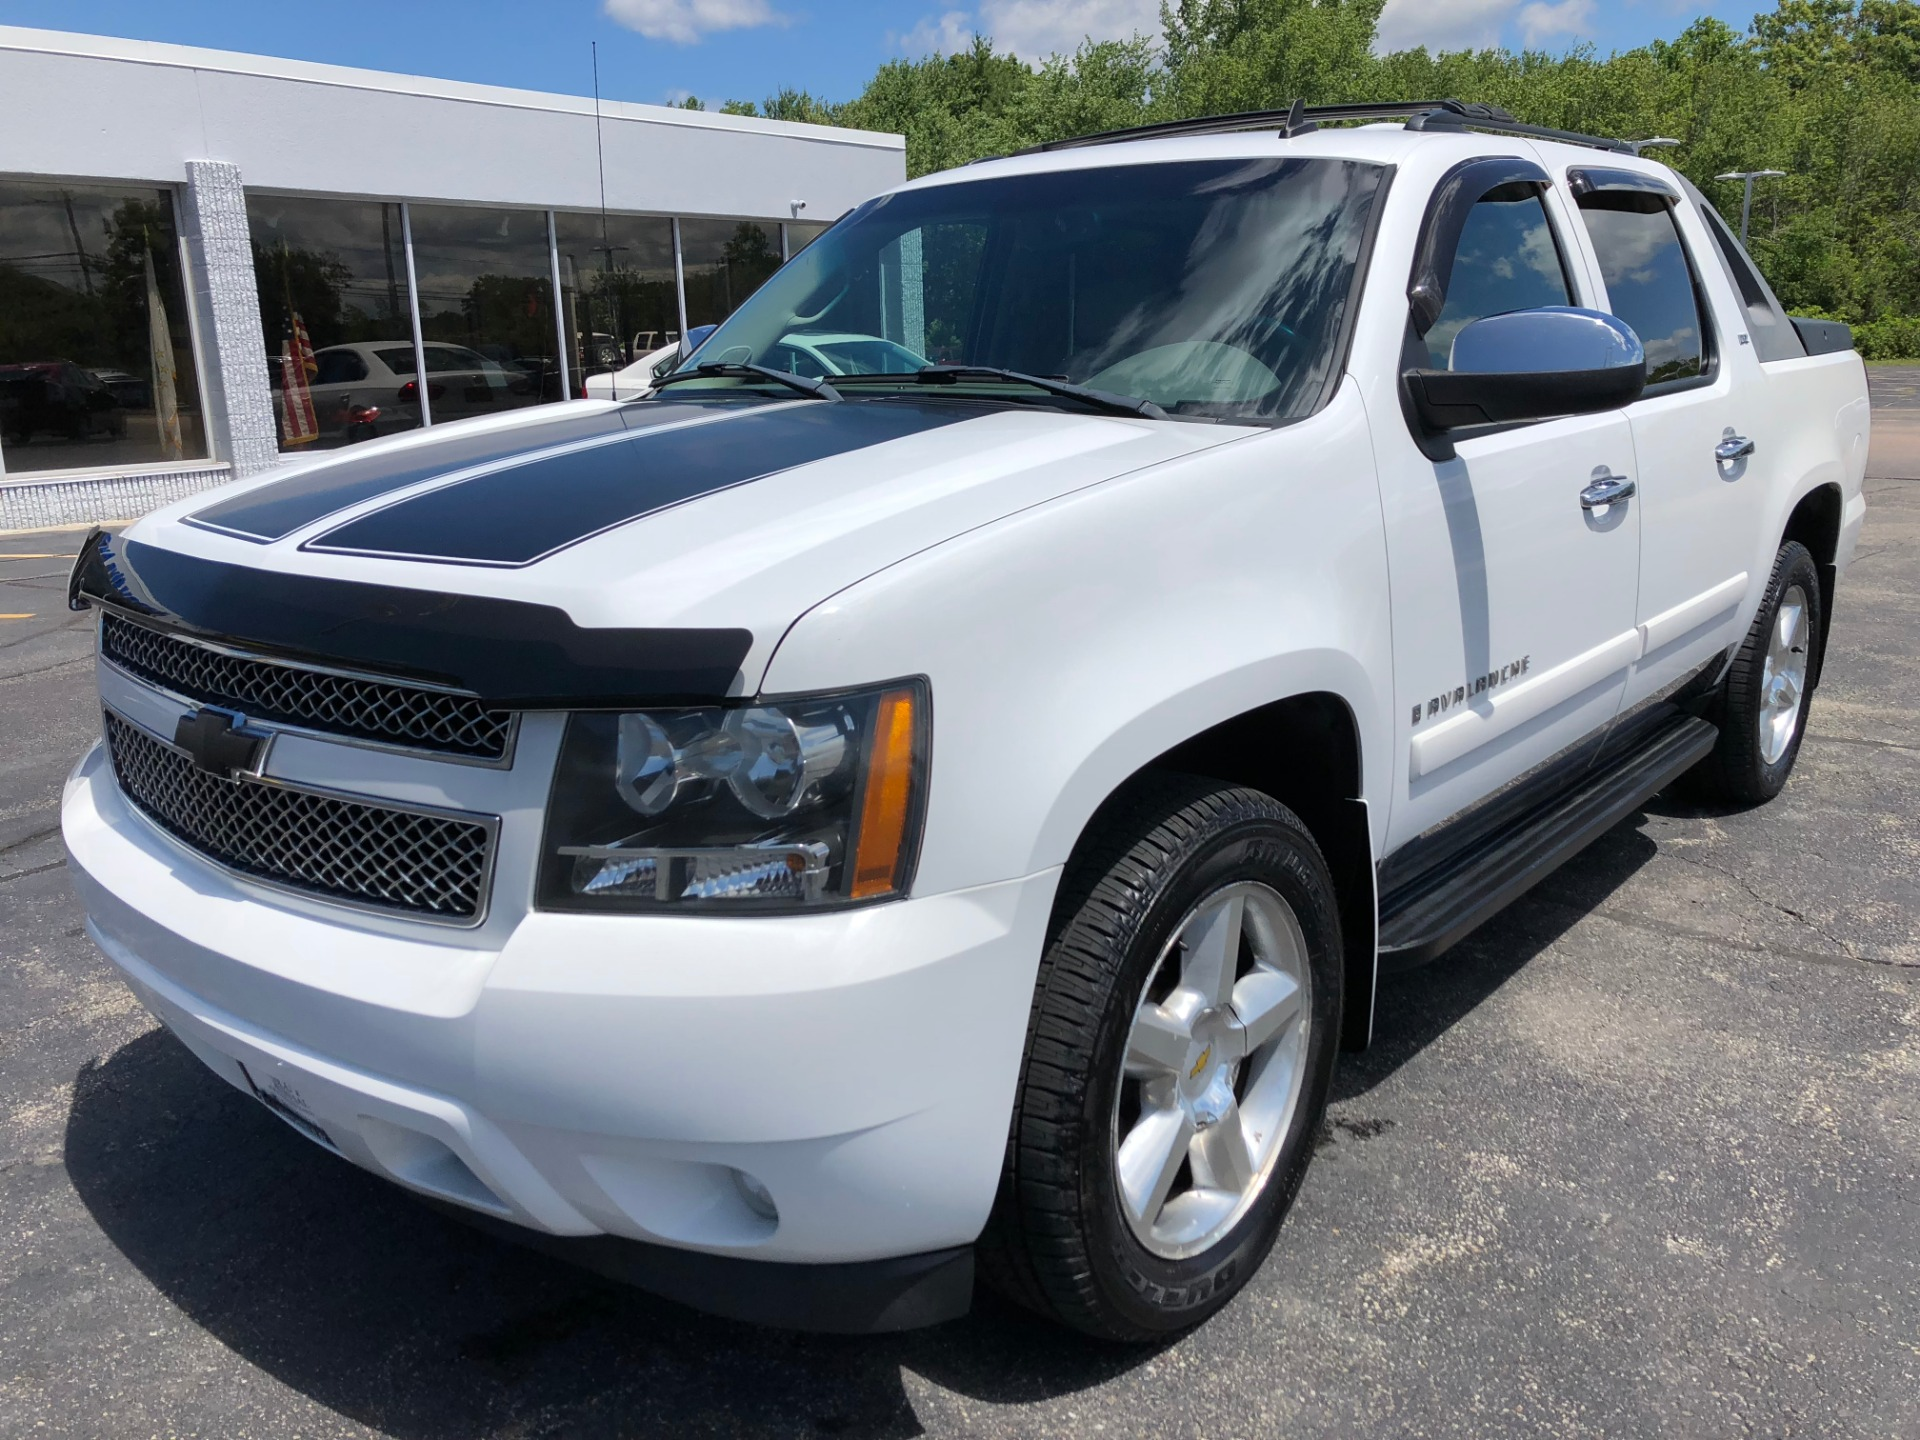 2008 chevrolet avalanche 1500 stock 1522 for sale near. Black Bedroom Furniture Sets. Home Design Ideas